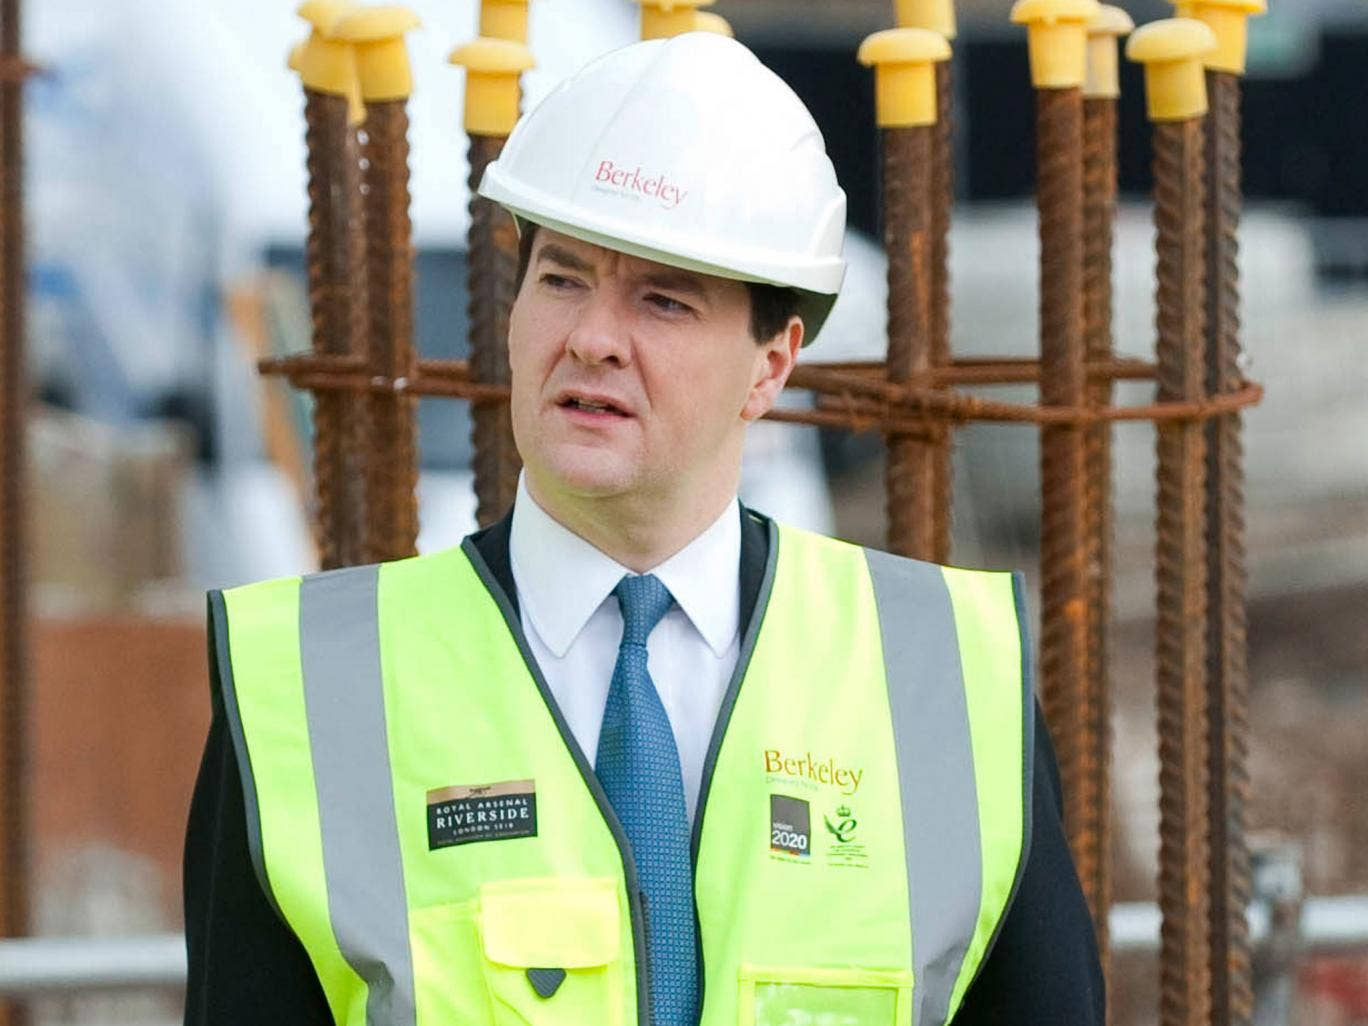 George Osborne is pushing ahead with a massive nationwide road-building programme despite concerns there is little evidence it will boost the economy